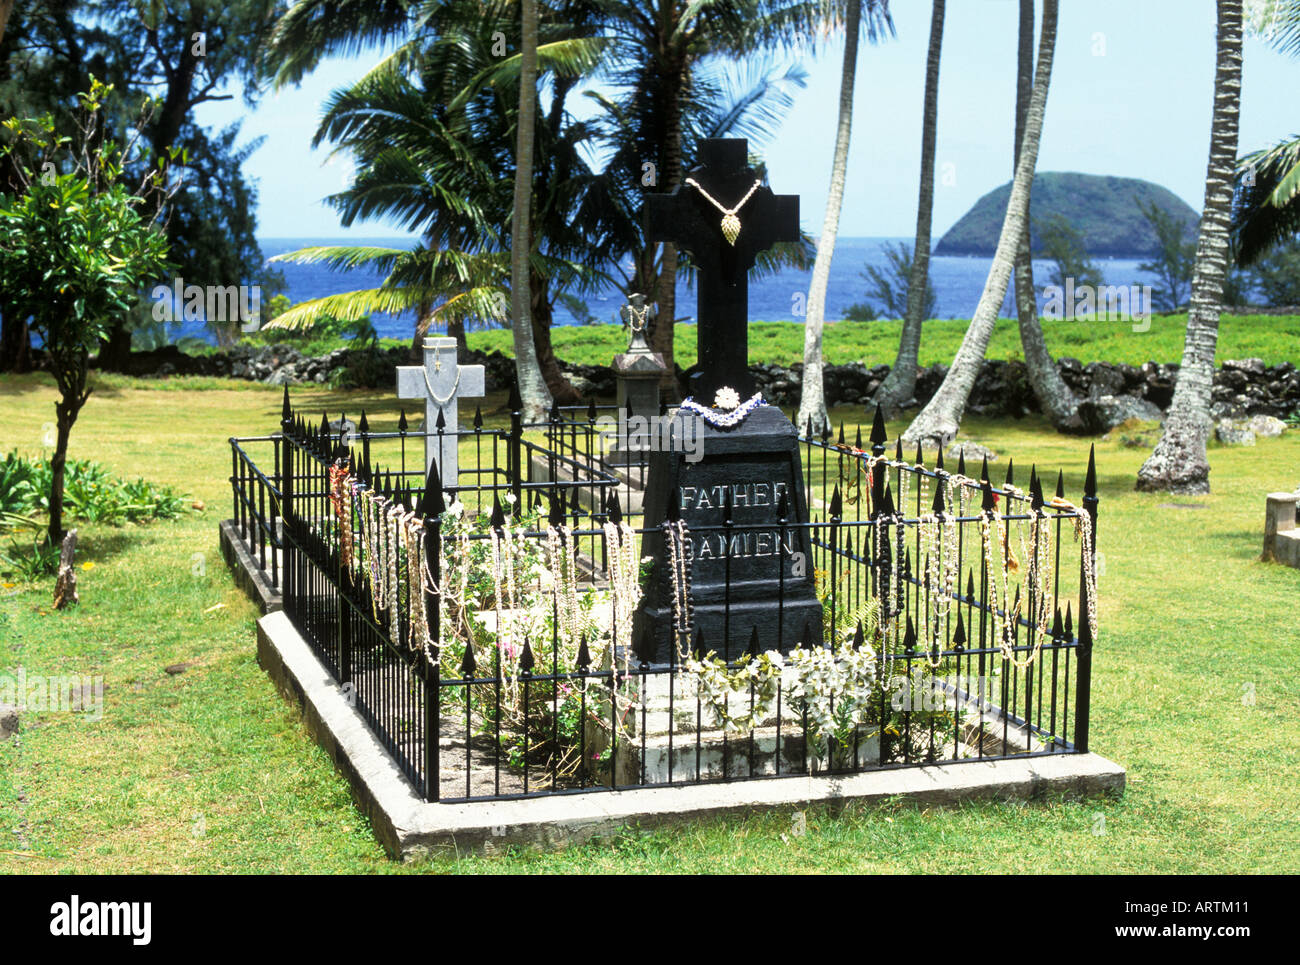 Father Damian s Grave Kalawao Molokai Hawaii - Stock Image